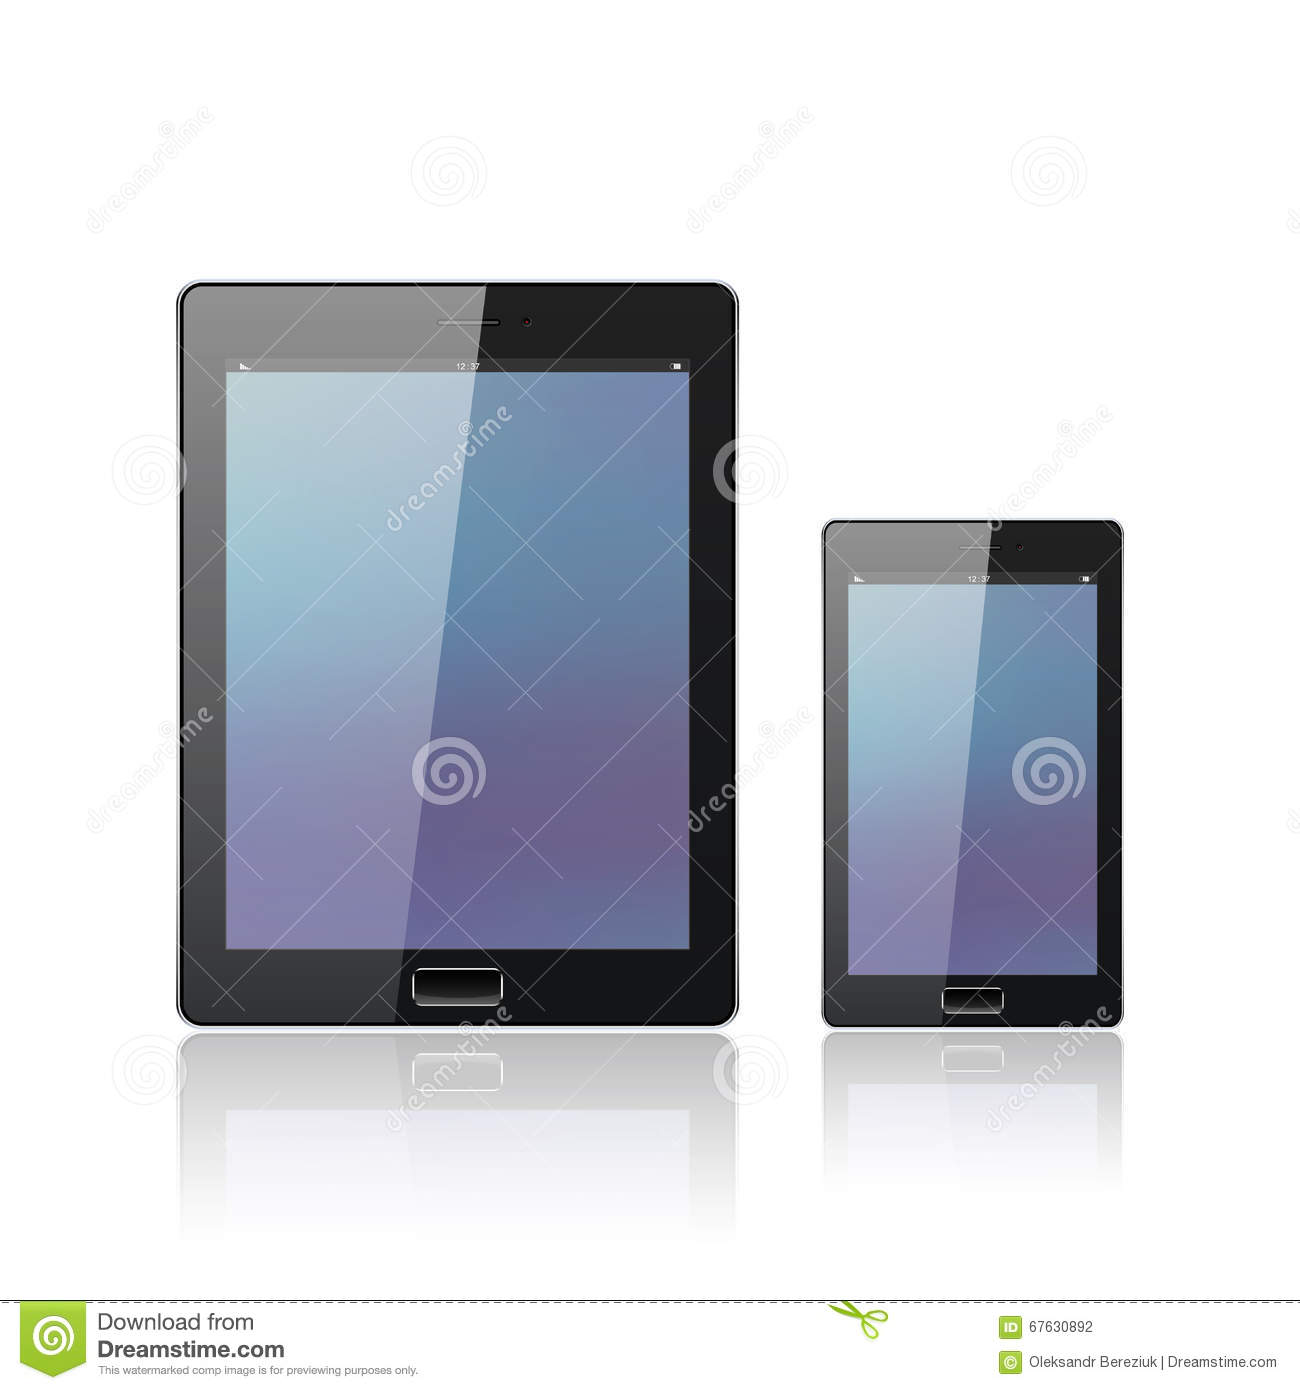 Astounding Modern Digital Tablet Pc With Mobile Smartphone On The White Download Free Architecture Designs Scobabritishbridgeorg